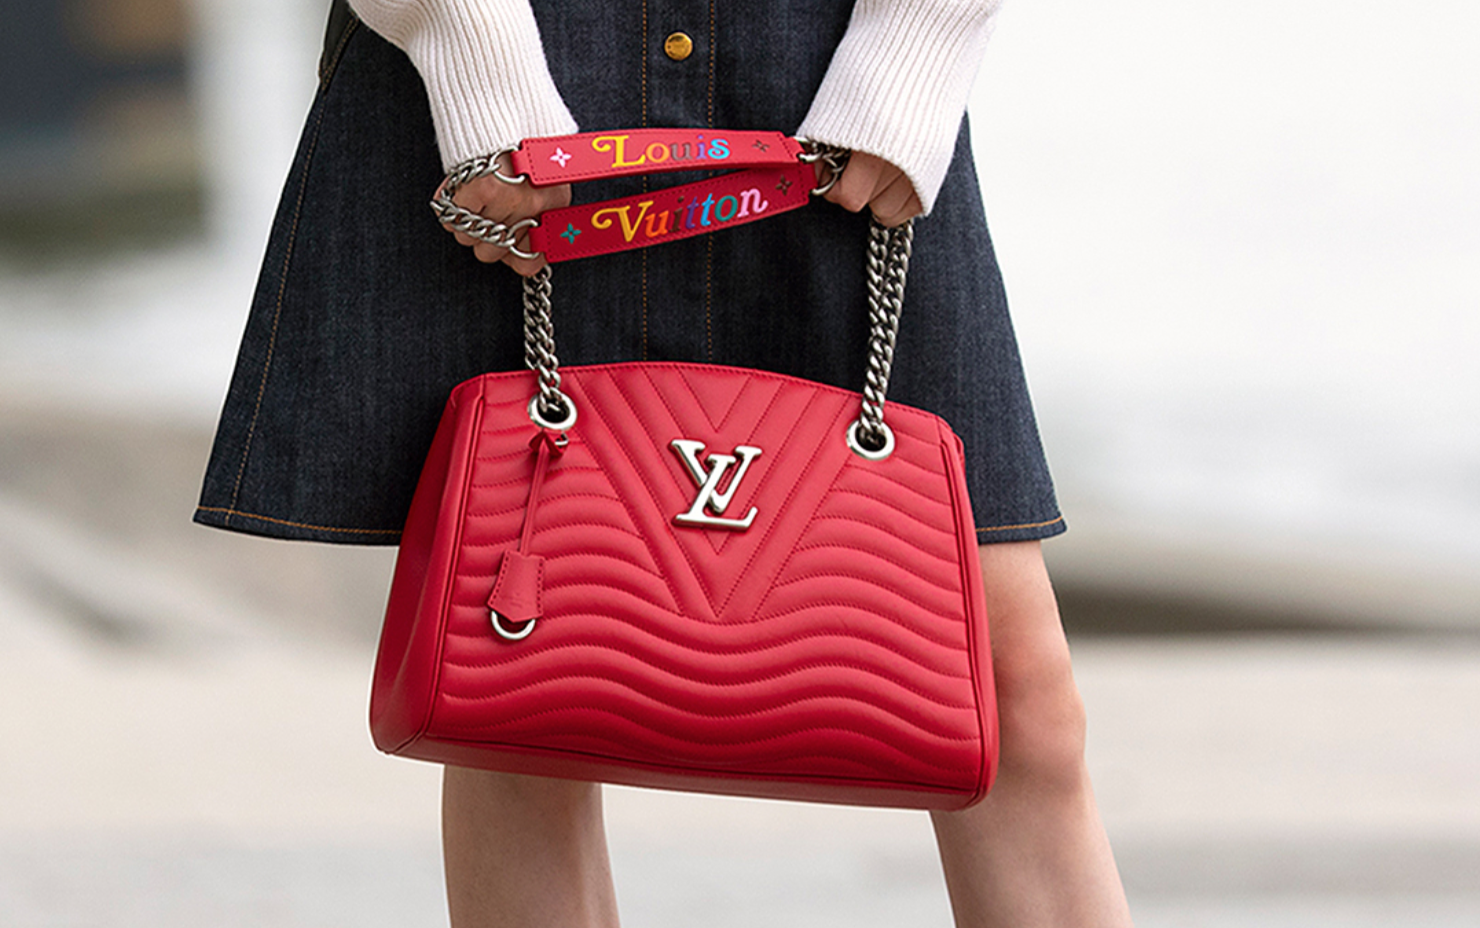 image: Louis Vuitton